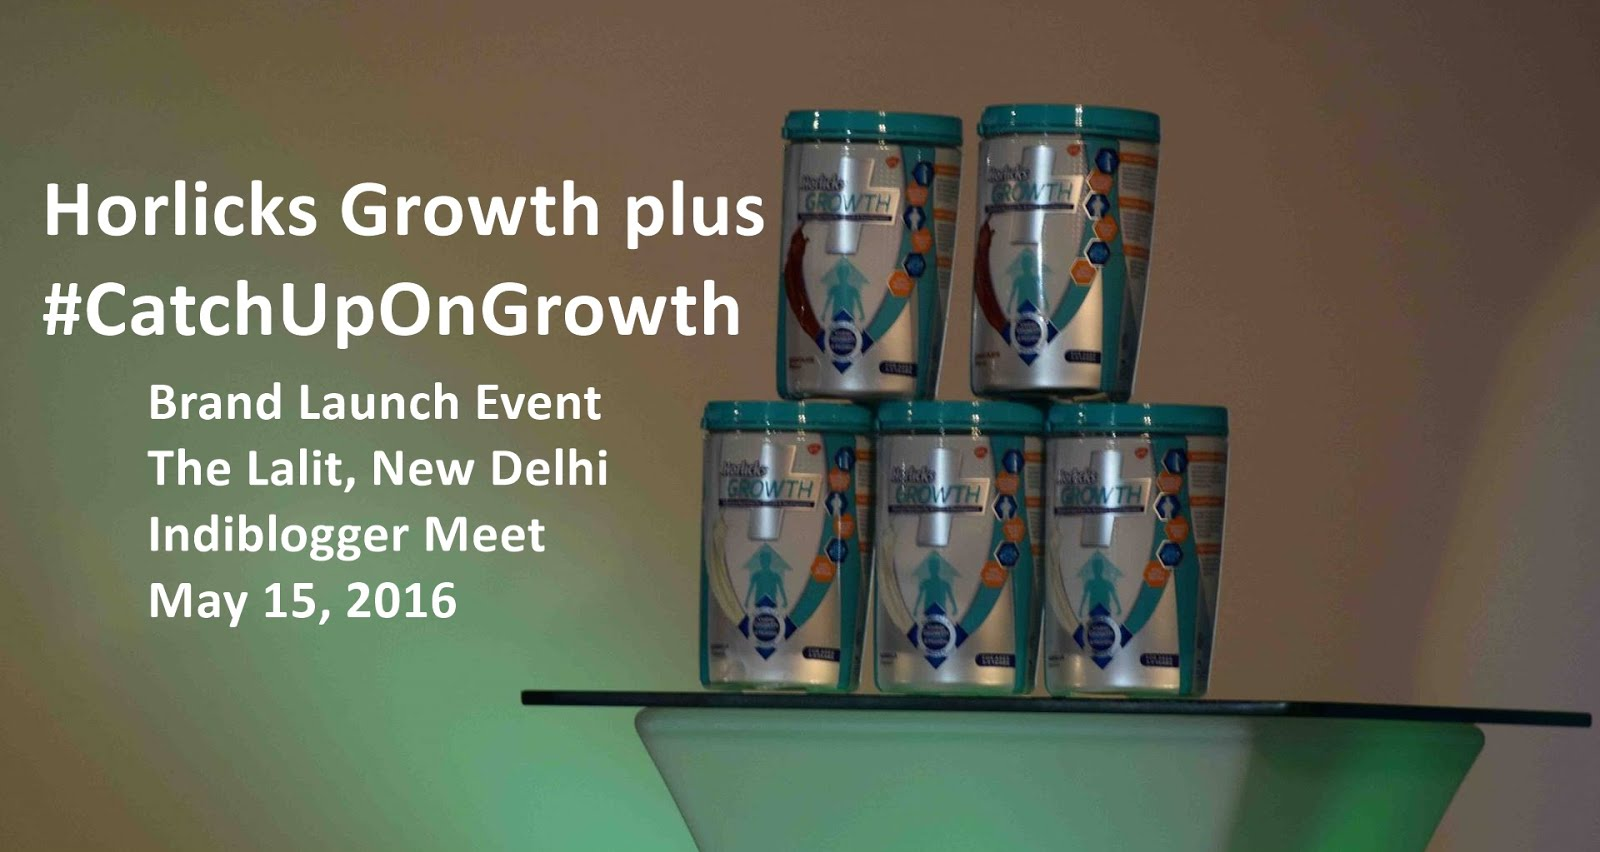 Horlicks Growth Plus to #CatchUpOnGrowth